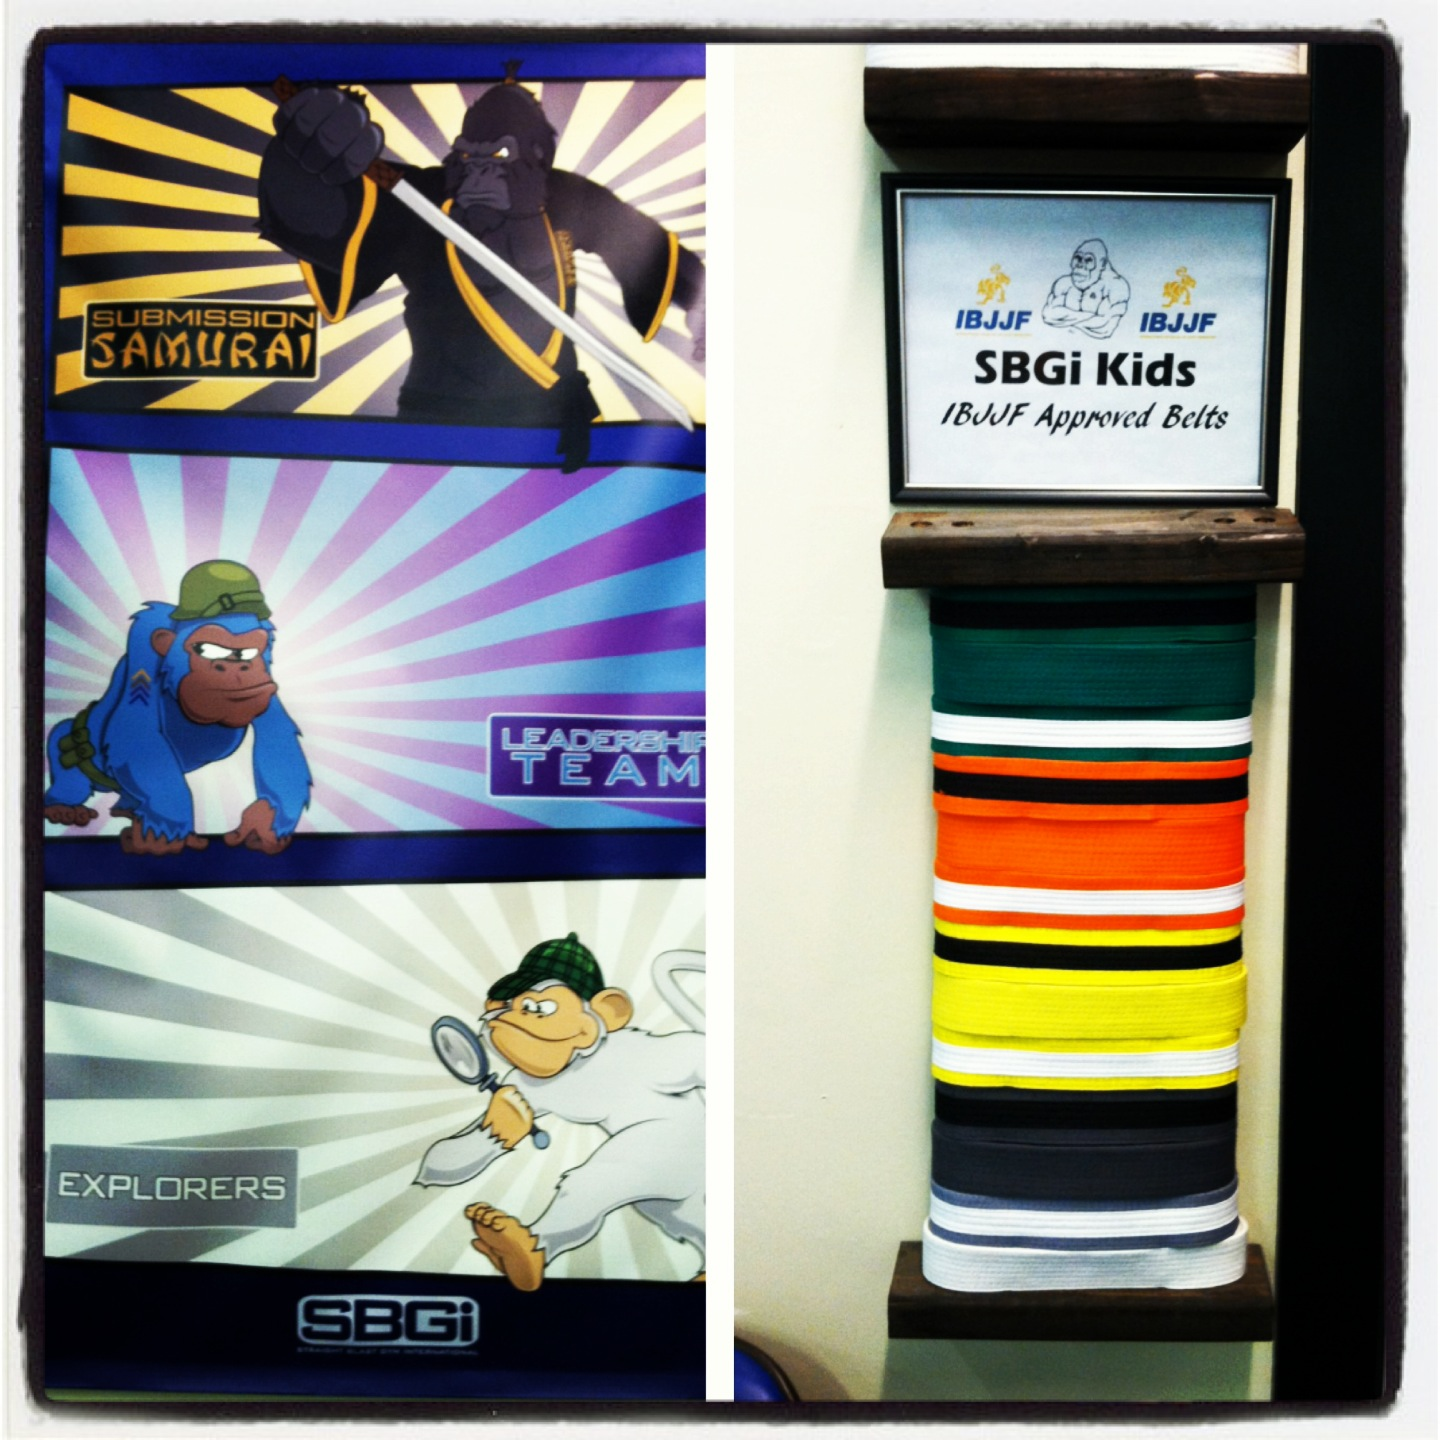 Kids Programs and belt ranks at SBGi